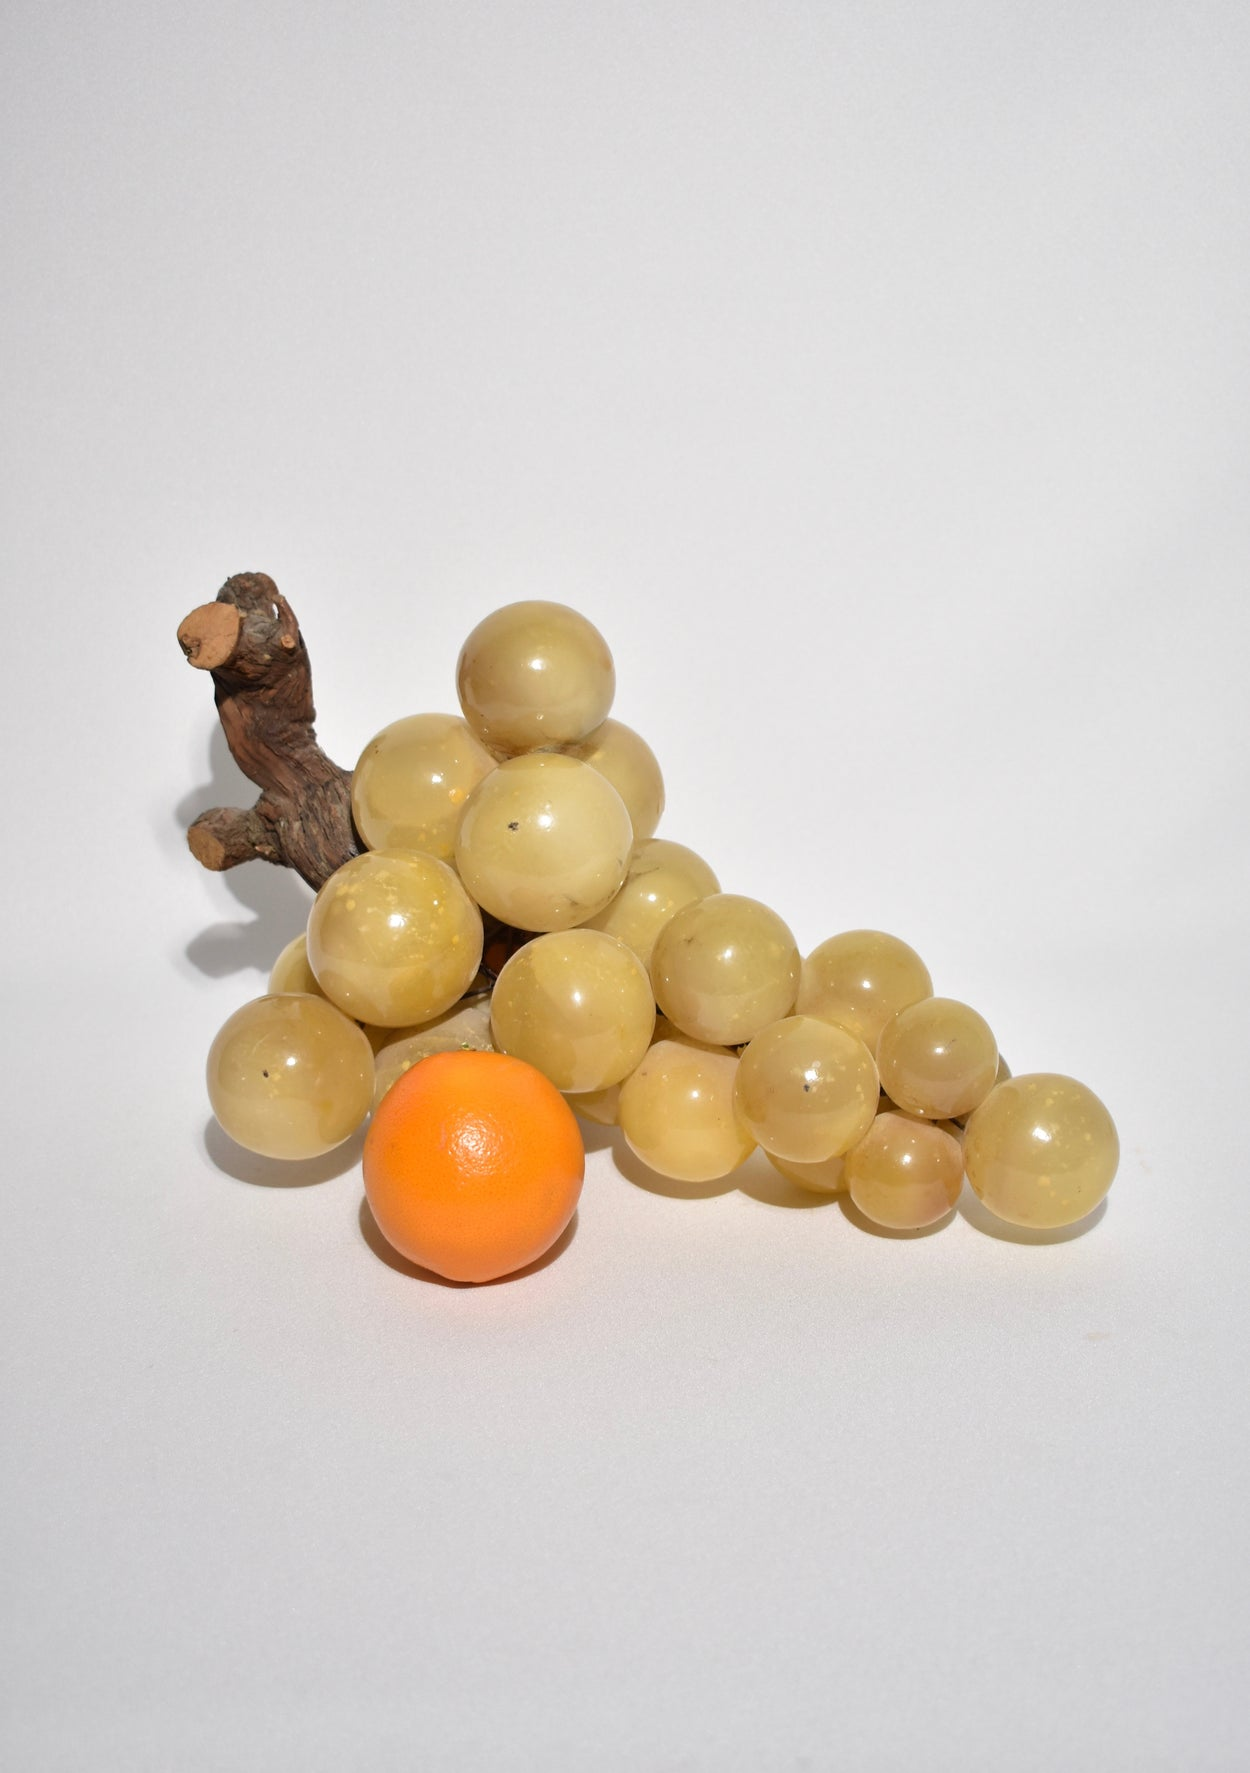 Large Alabaster Grape Sculpture